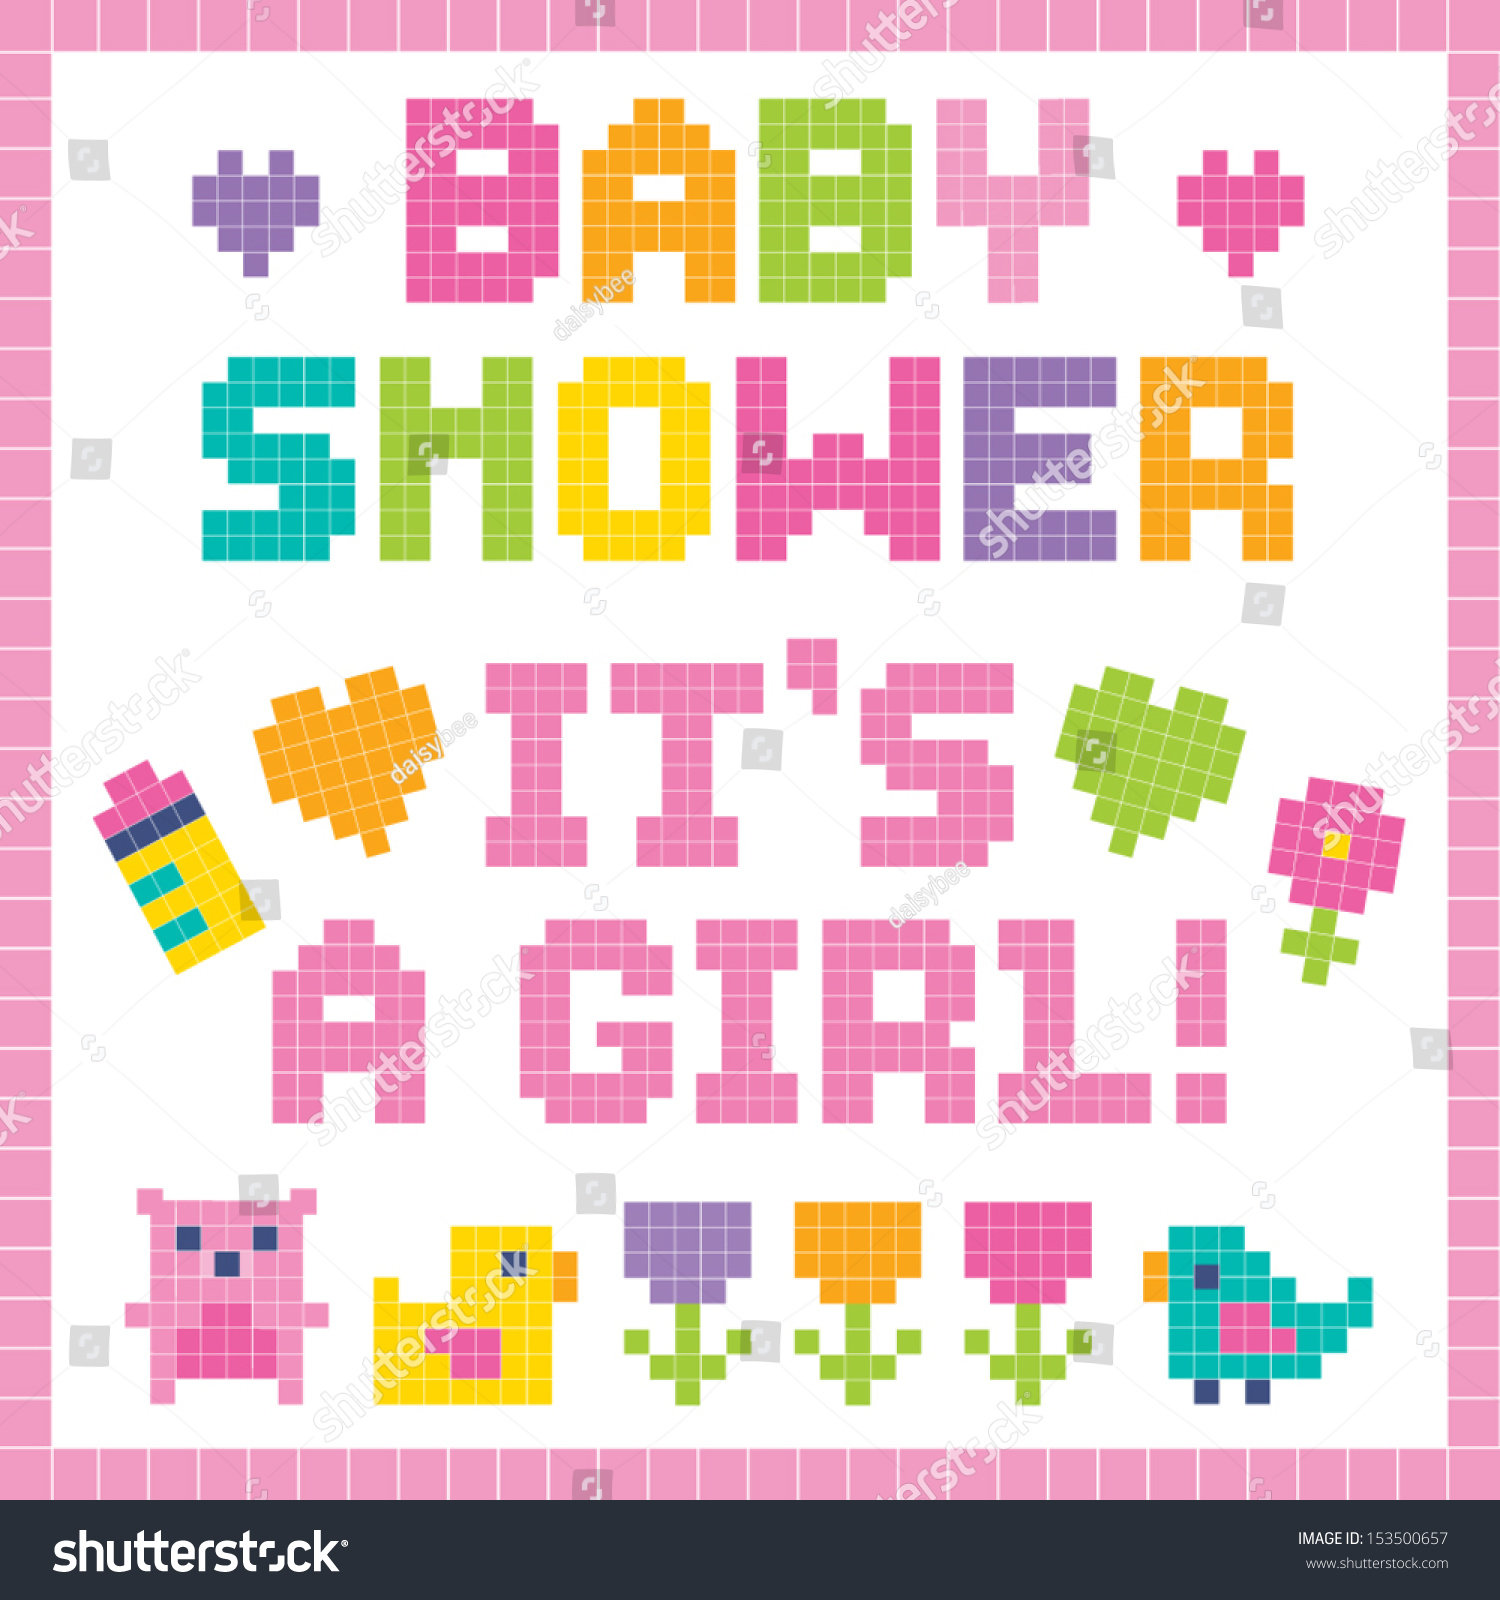 Royalty-free Cute set of pixel art baby elements and… #153500657 ...